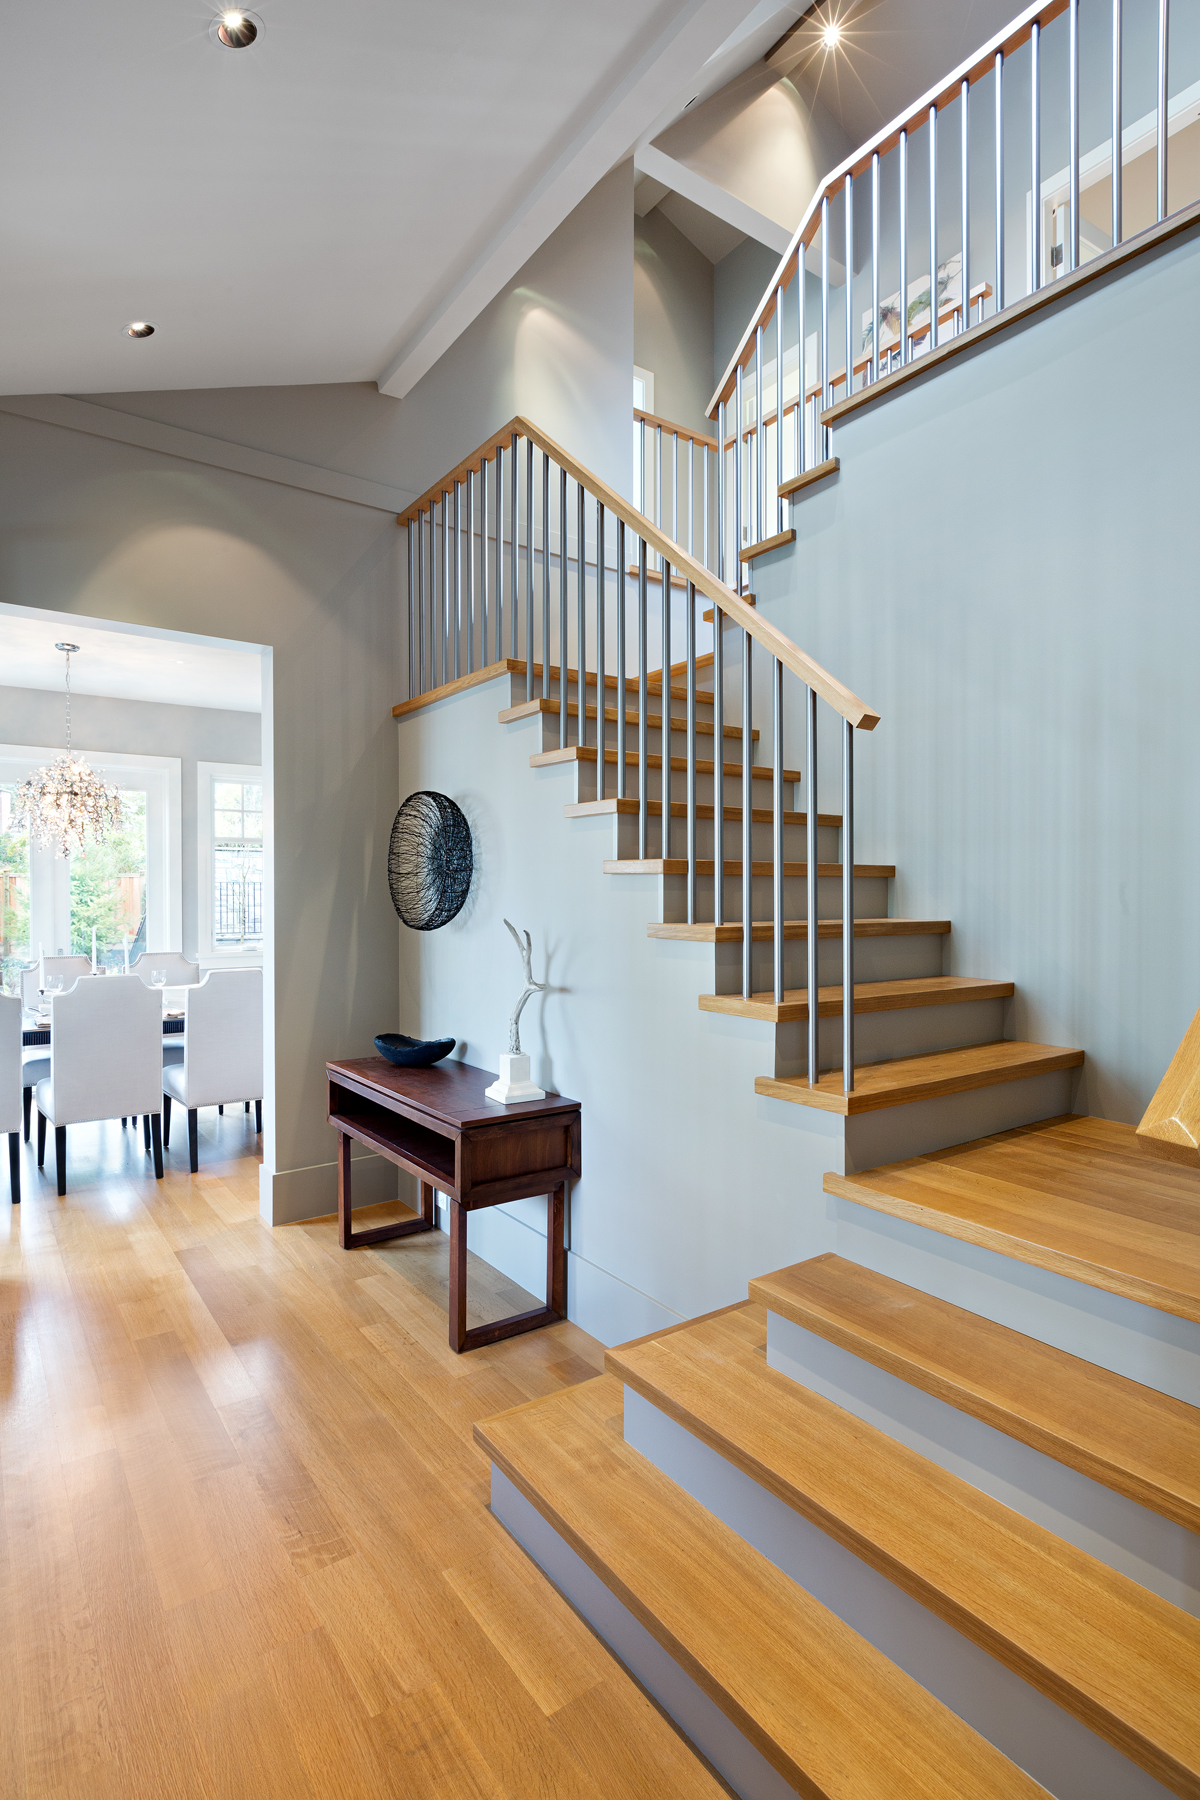 Staircase - Shaughnessy - 1338 West 15th Avenue, Vancouver, BC, Canada